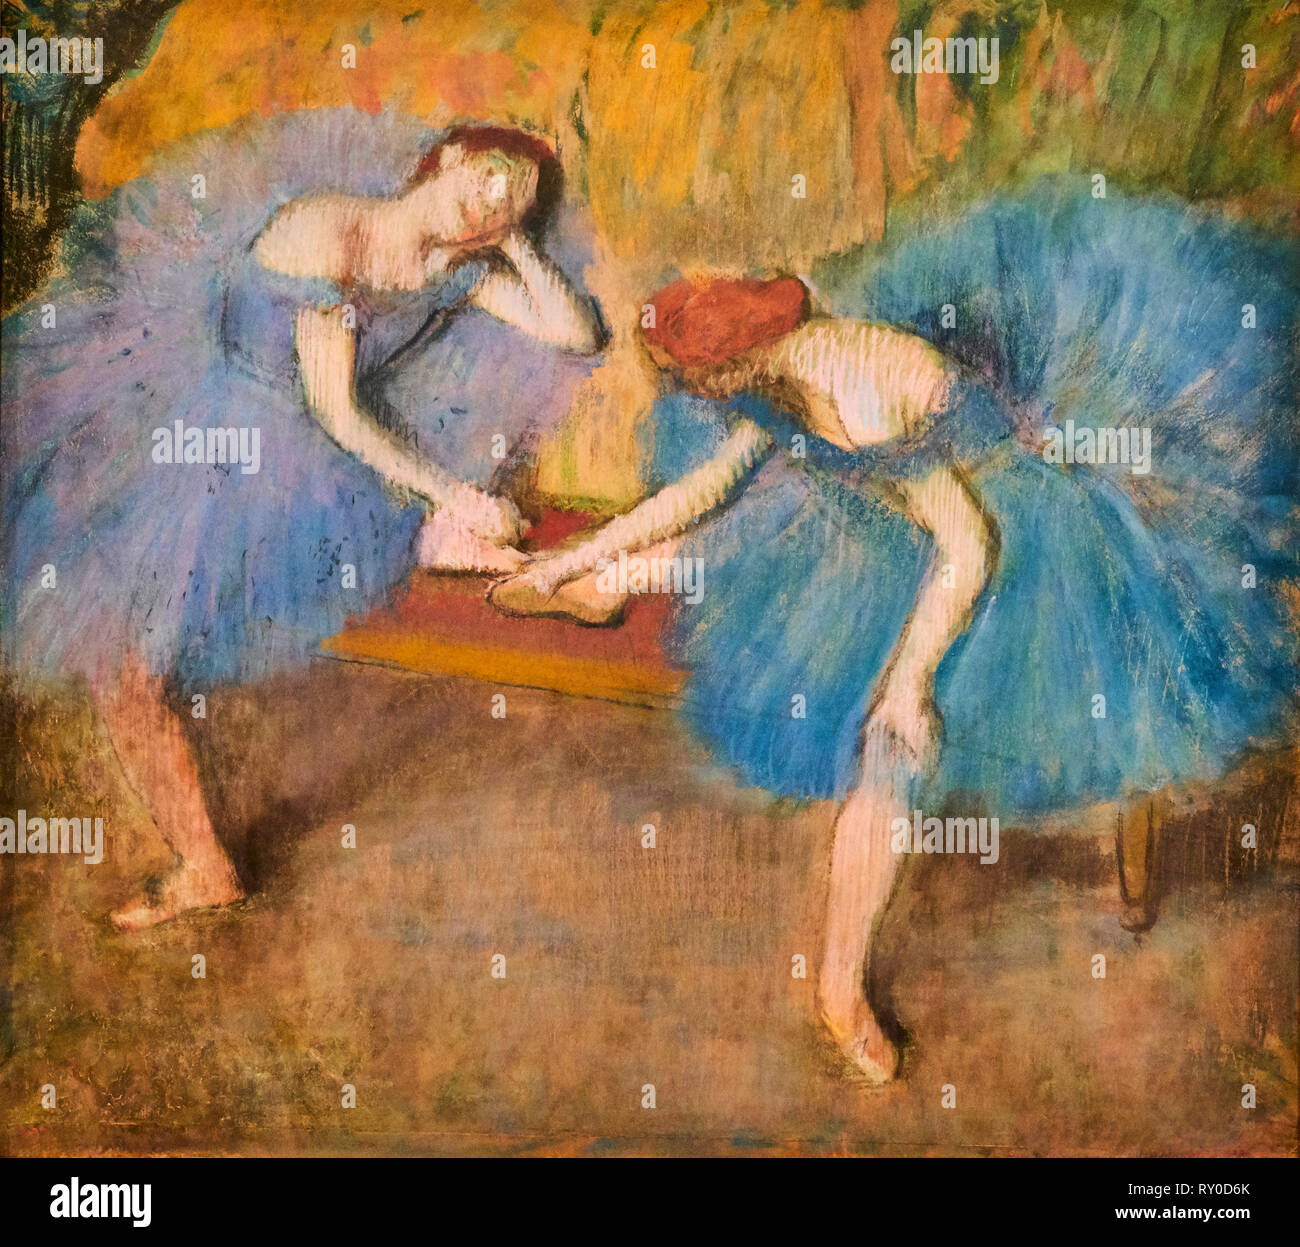 France, Paris, les Tuileries, museum of Orangerie, deux danseuses au repos by Edgar Degas, 1898 - Stock Image